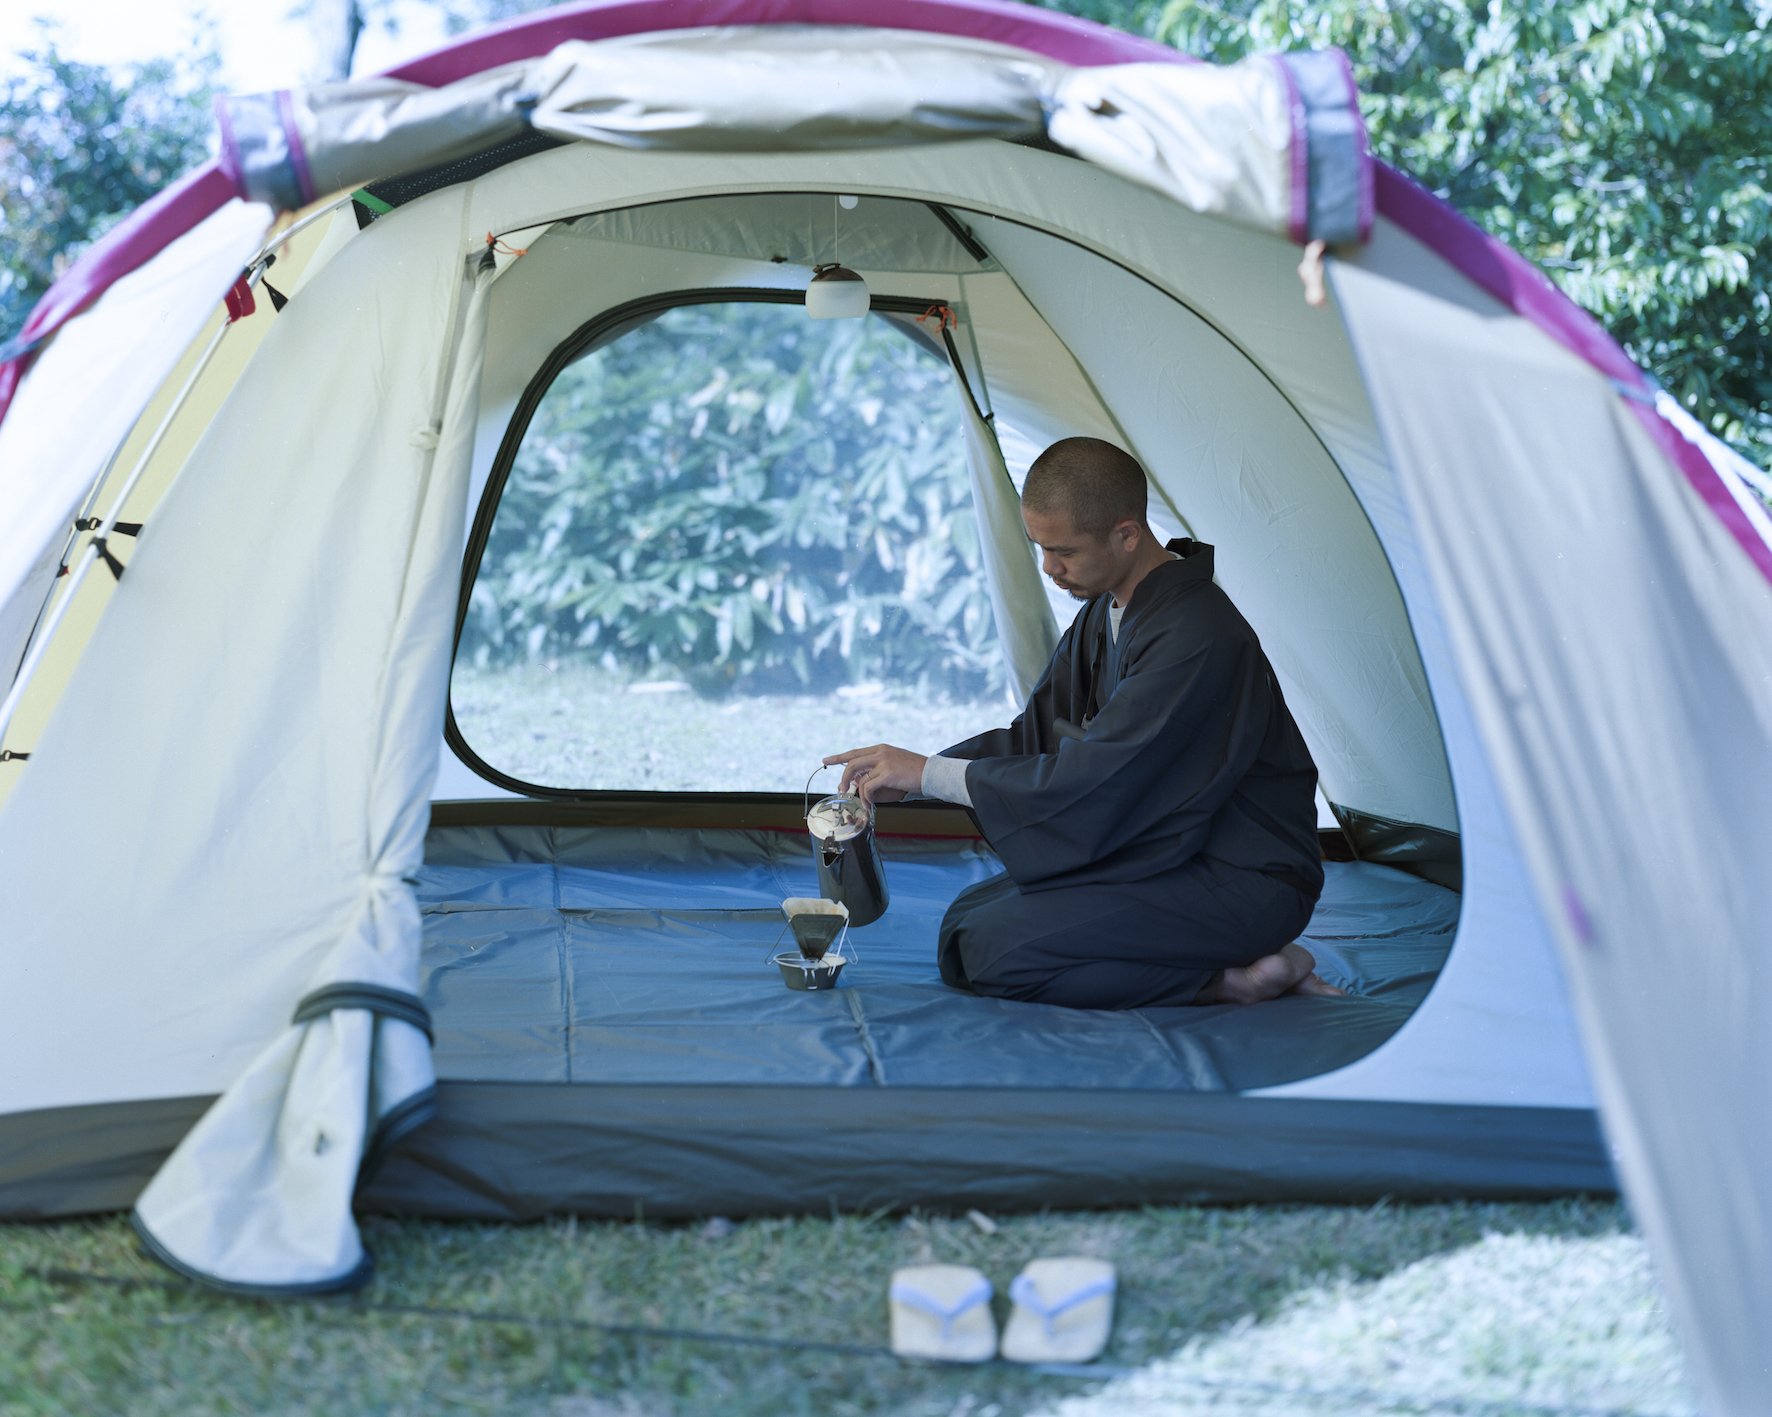 Best shops to buy outdoor and camping gear in Tokyo